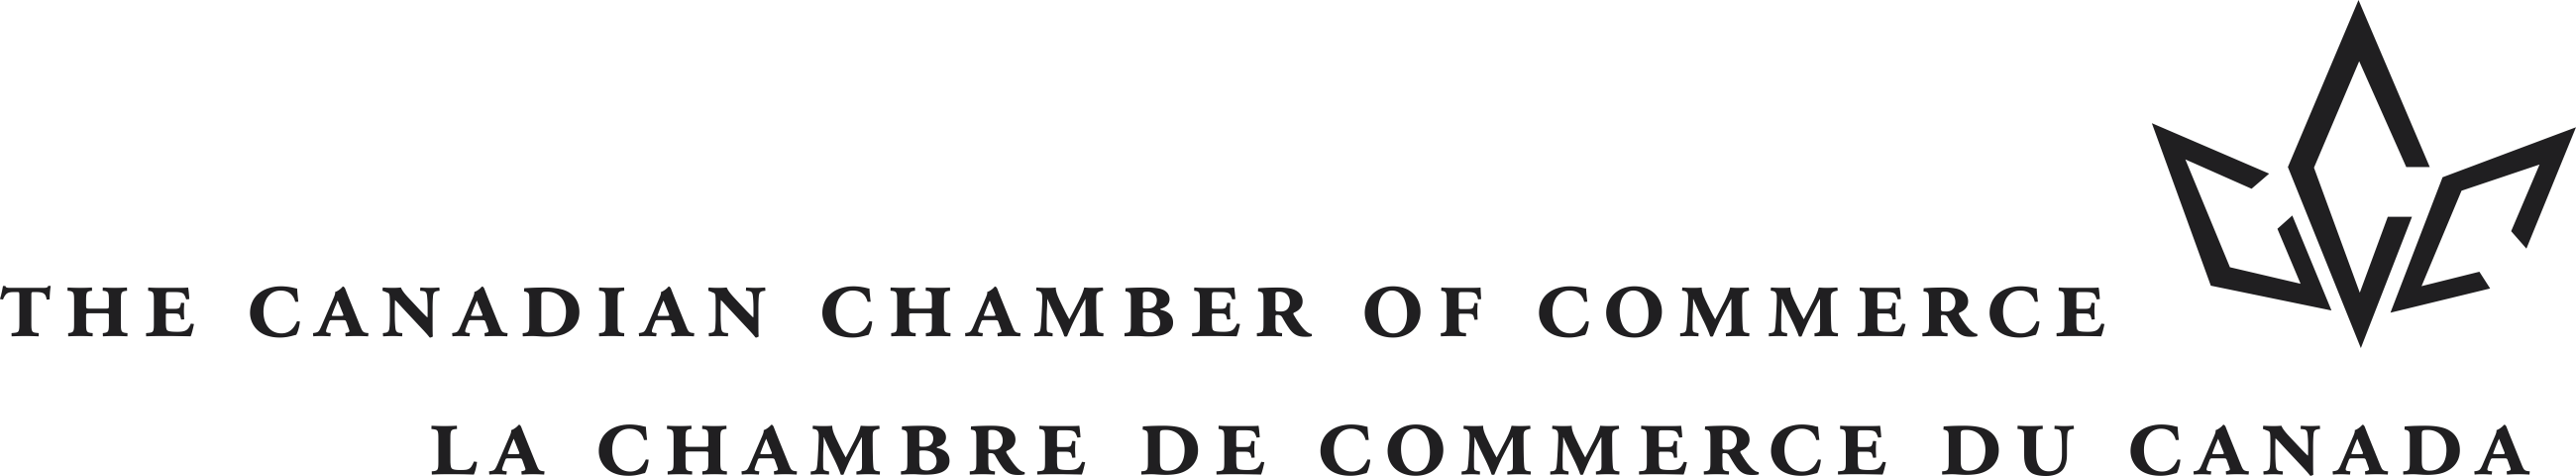 Click to see the full sized image for Canadian chambre of commerce